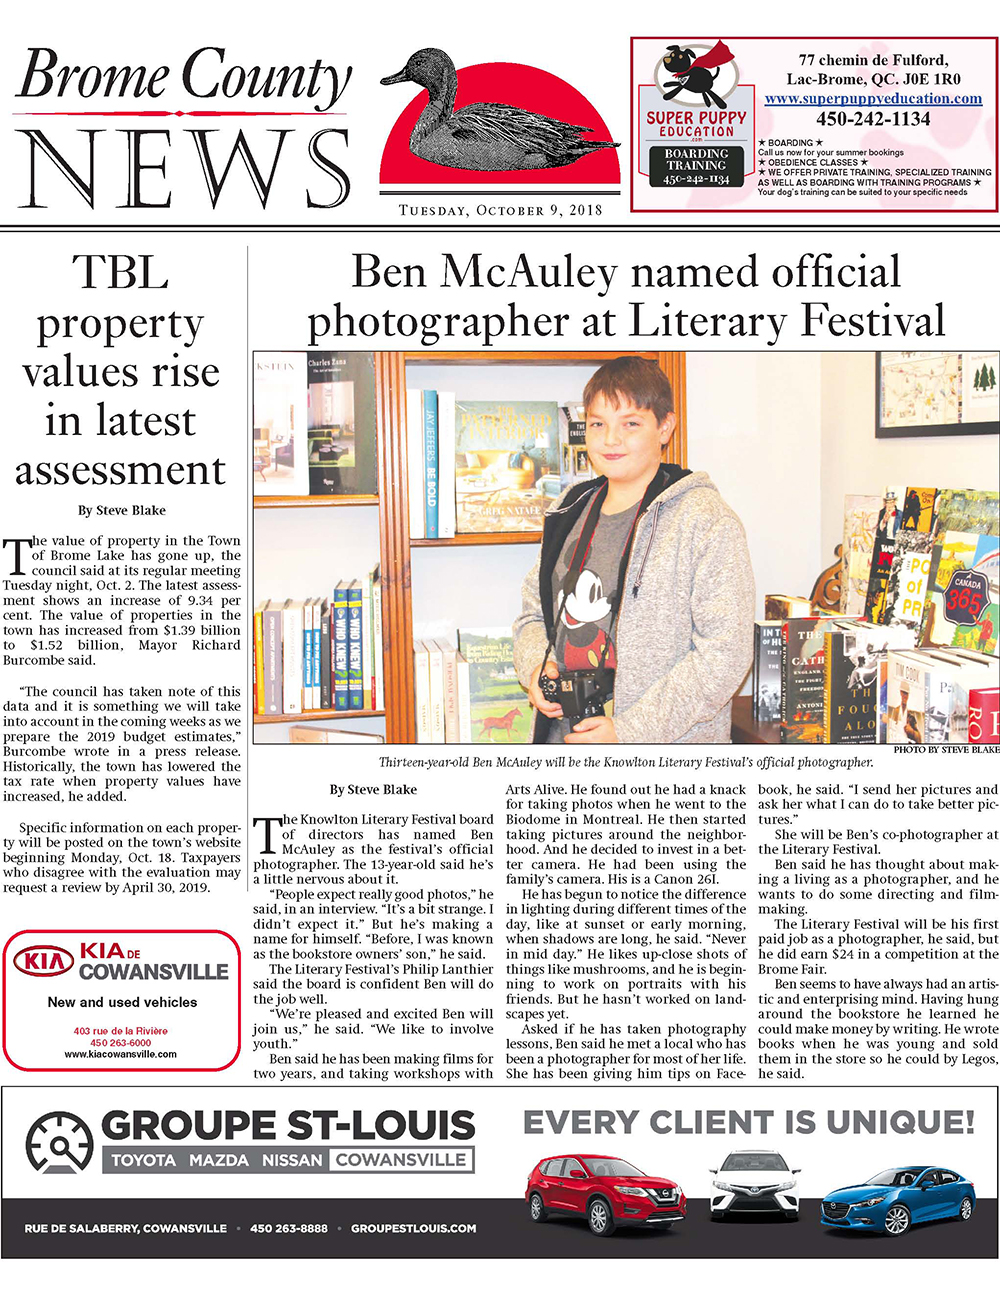 Brome County News – Tuesday, October 9 edition